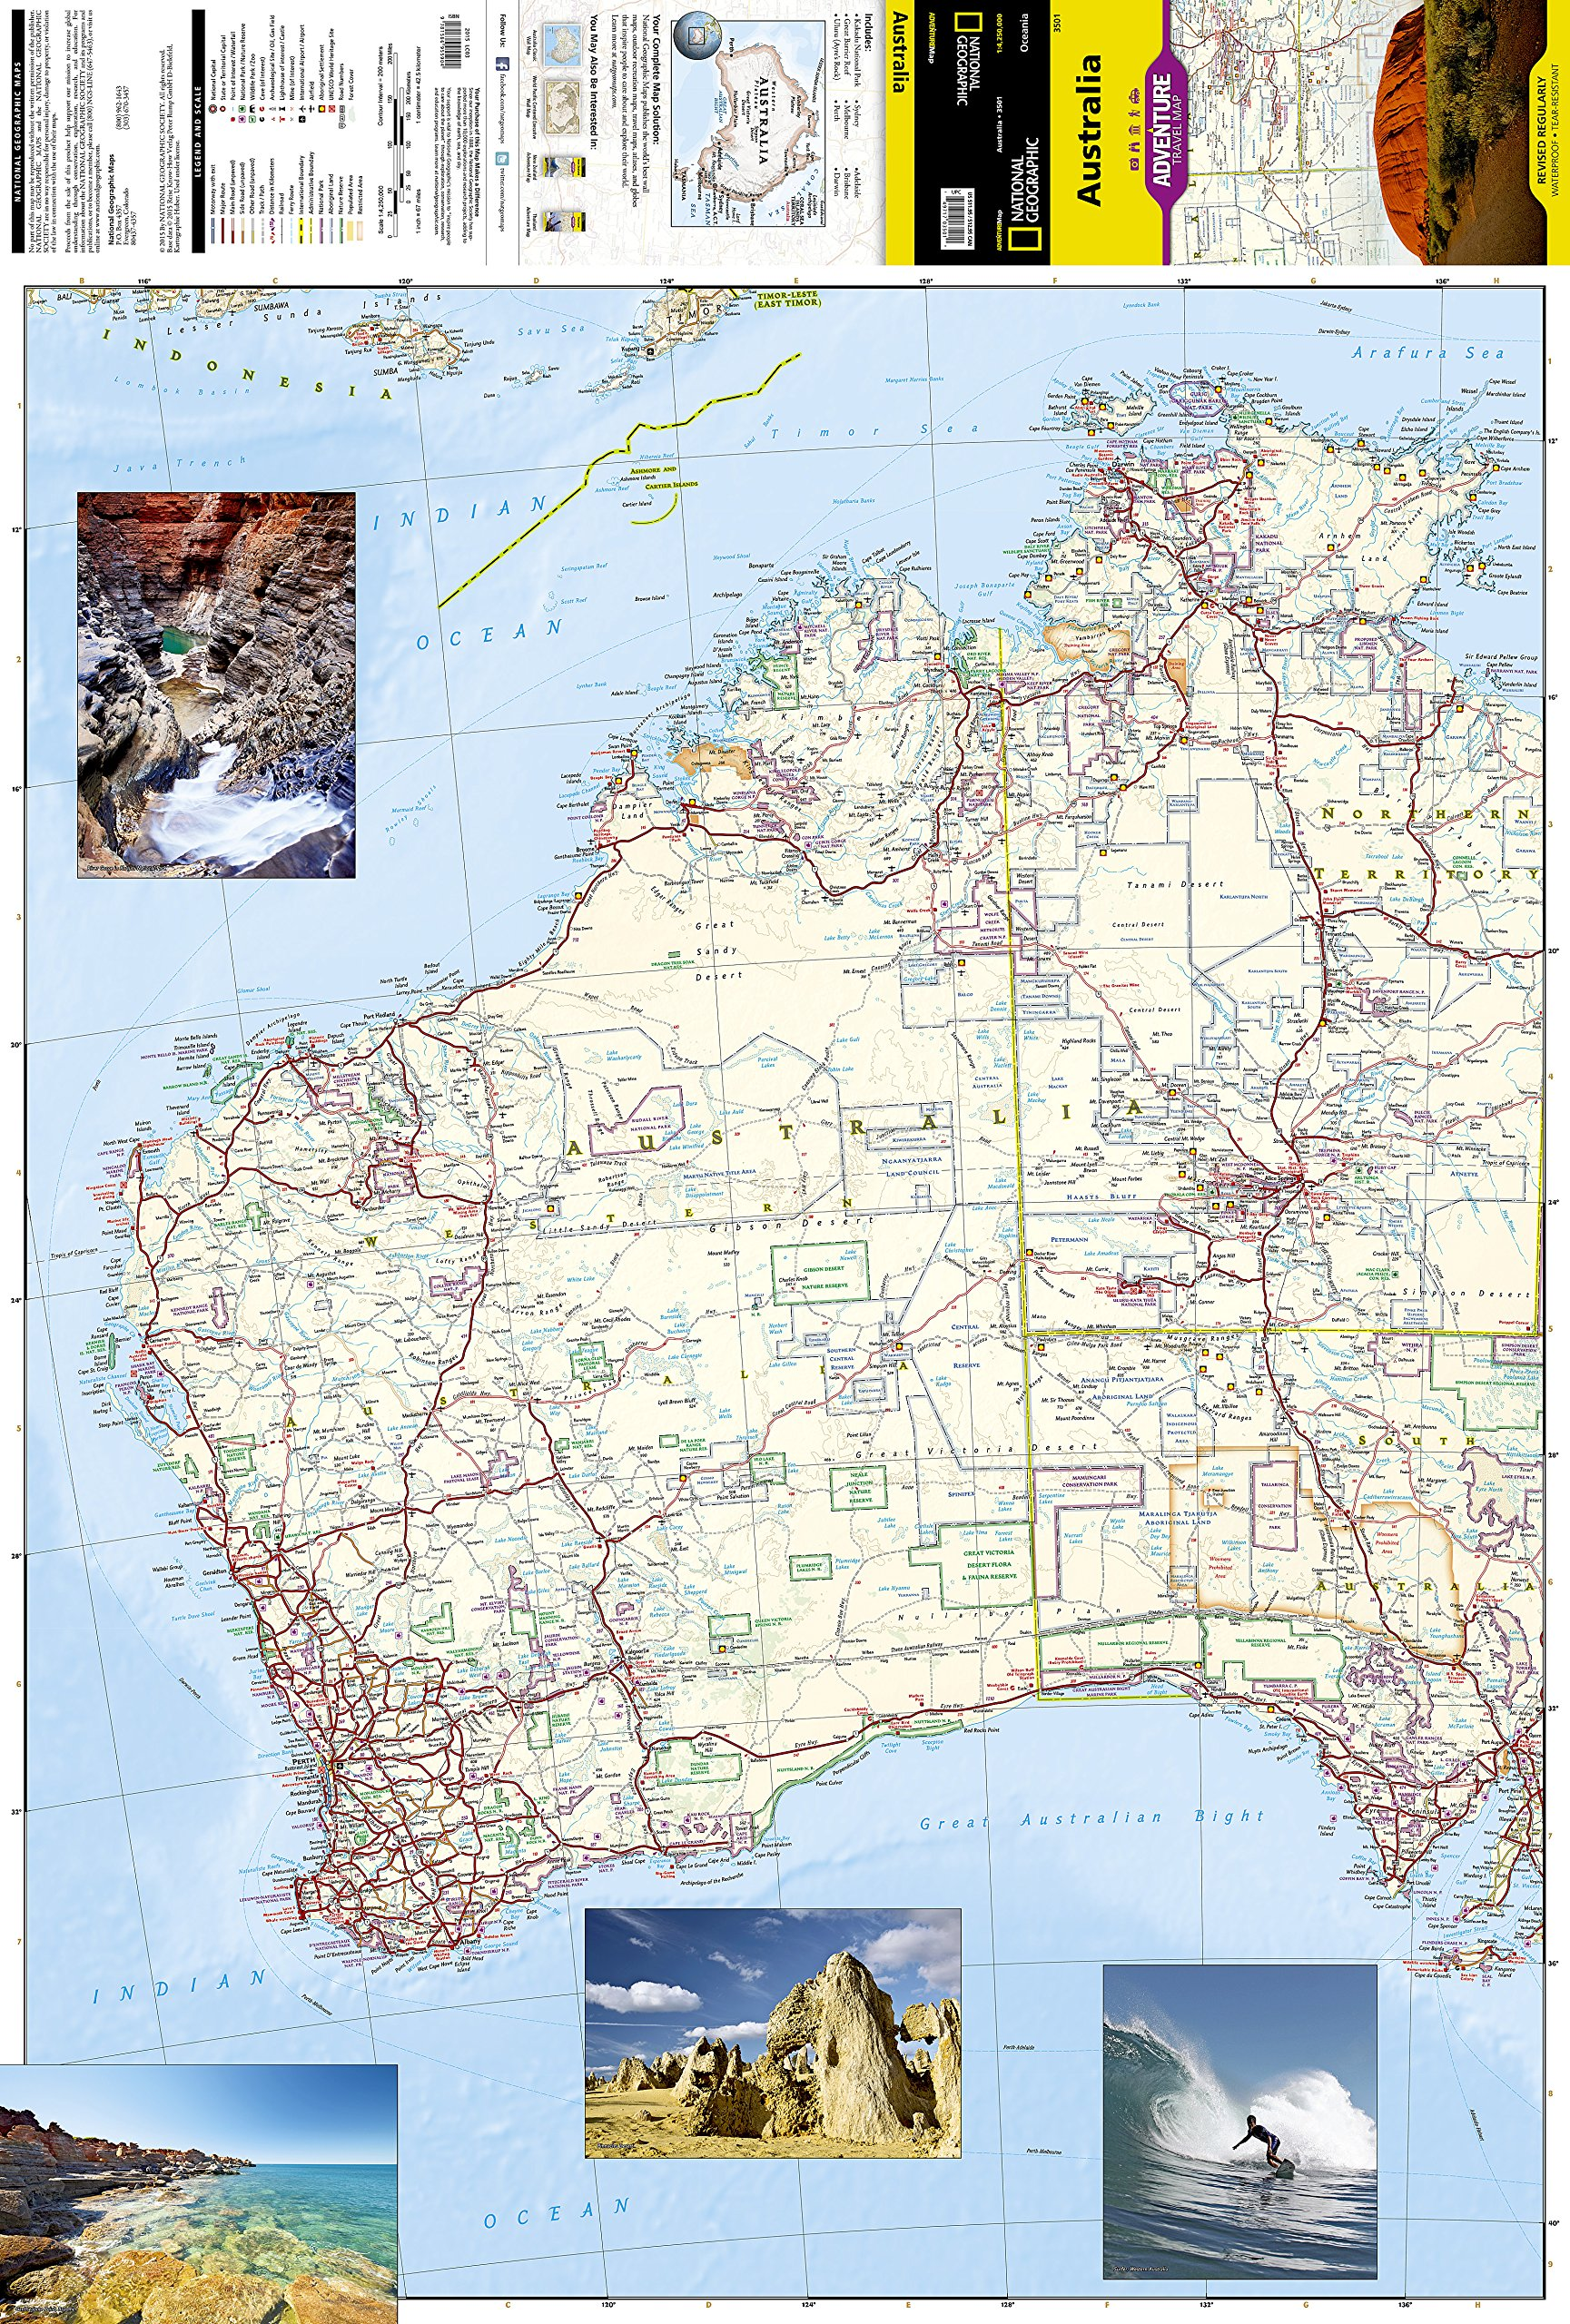 Australia national geographic adventure map national geographic australia national geographic adventure map national geographic maps adventure 9781566955904 amazon books gumiabroncs Gallery